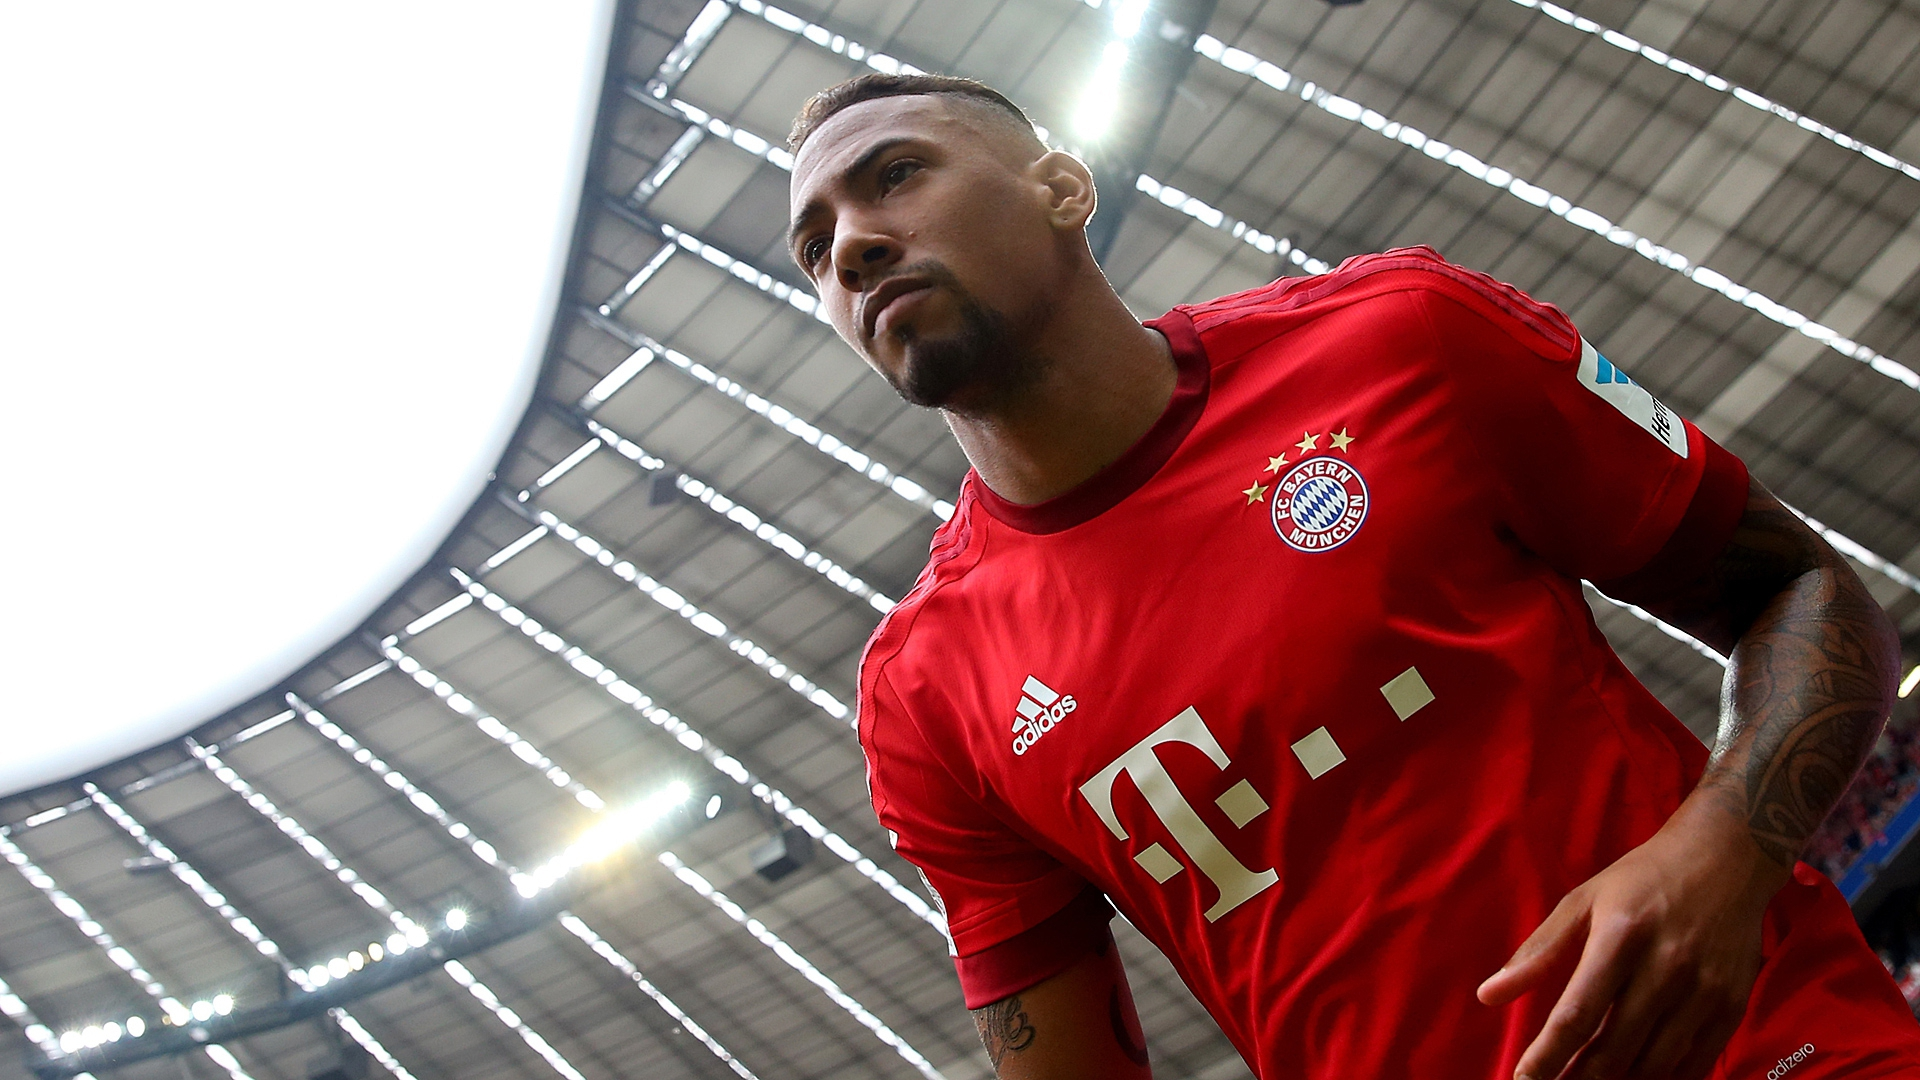 Jerome Boateng Wallpapers Hq 1920x1080